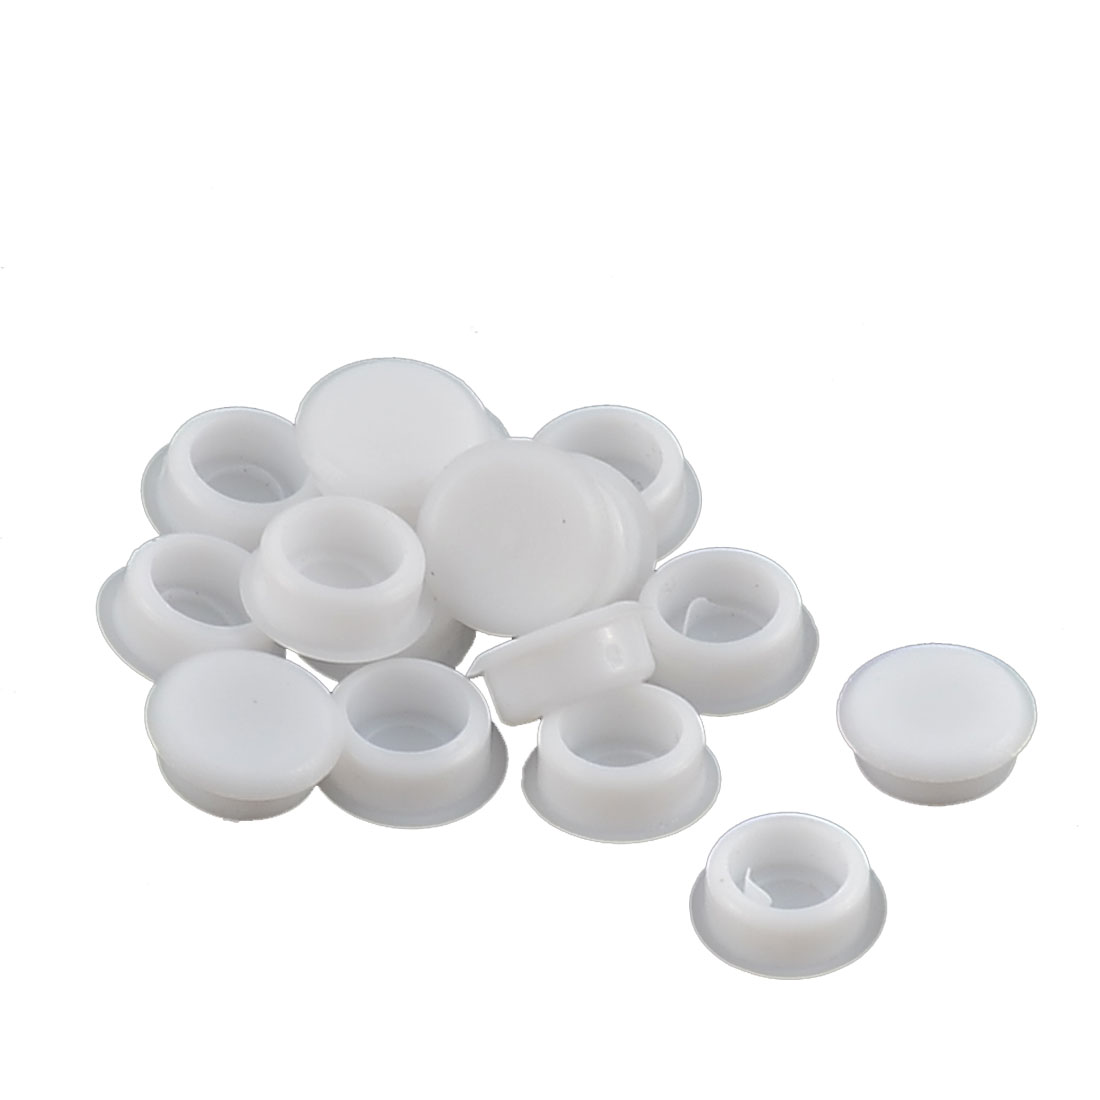 Home Plastic Round Flush Mount Cable Connector Hole Stoppers Covers White 8mm 16pcs